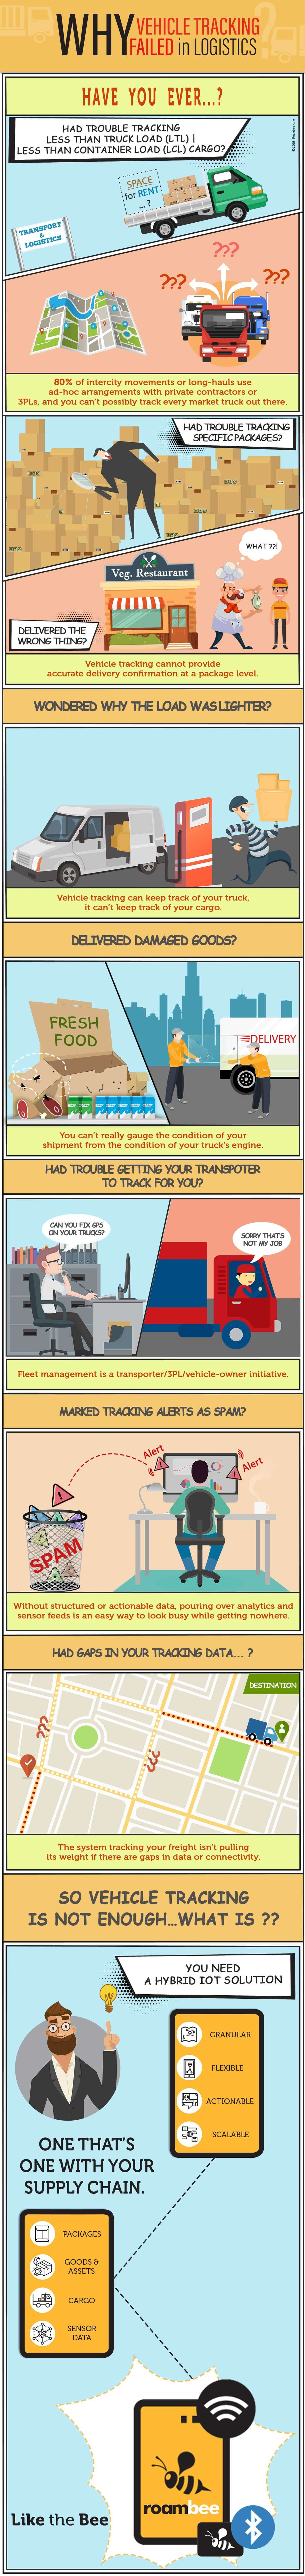 Why Vehicle Tracking Systems Failed in Logistics